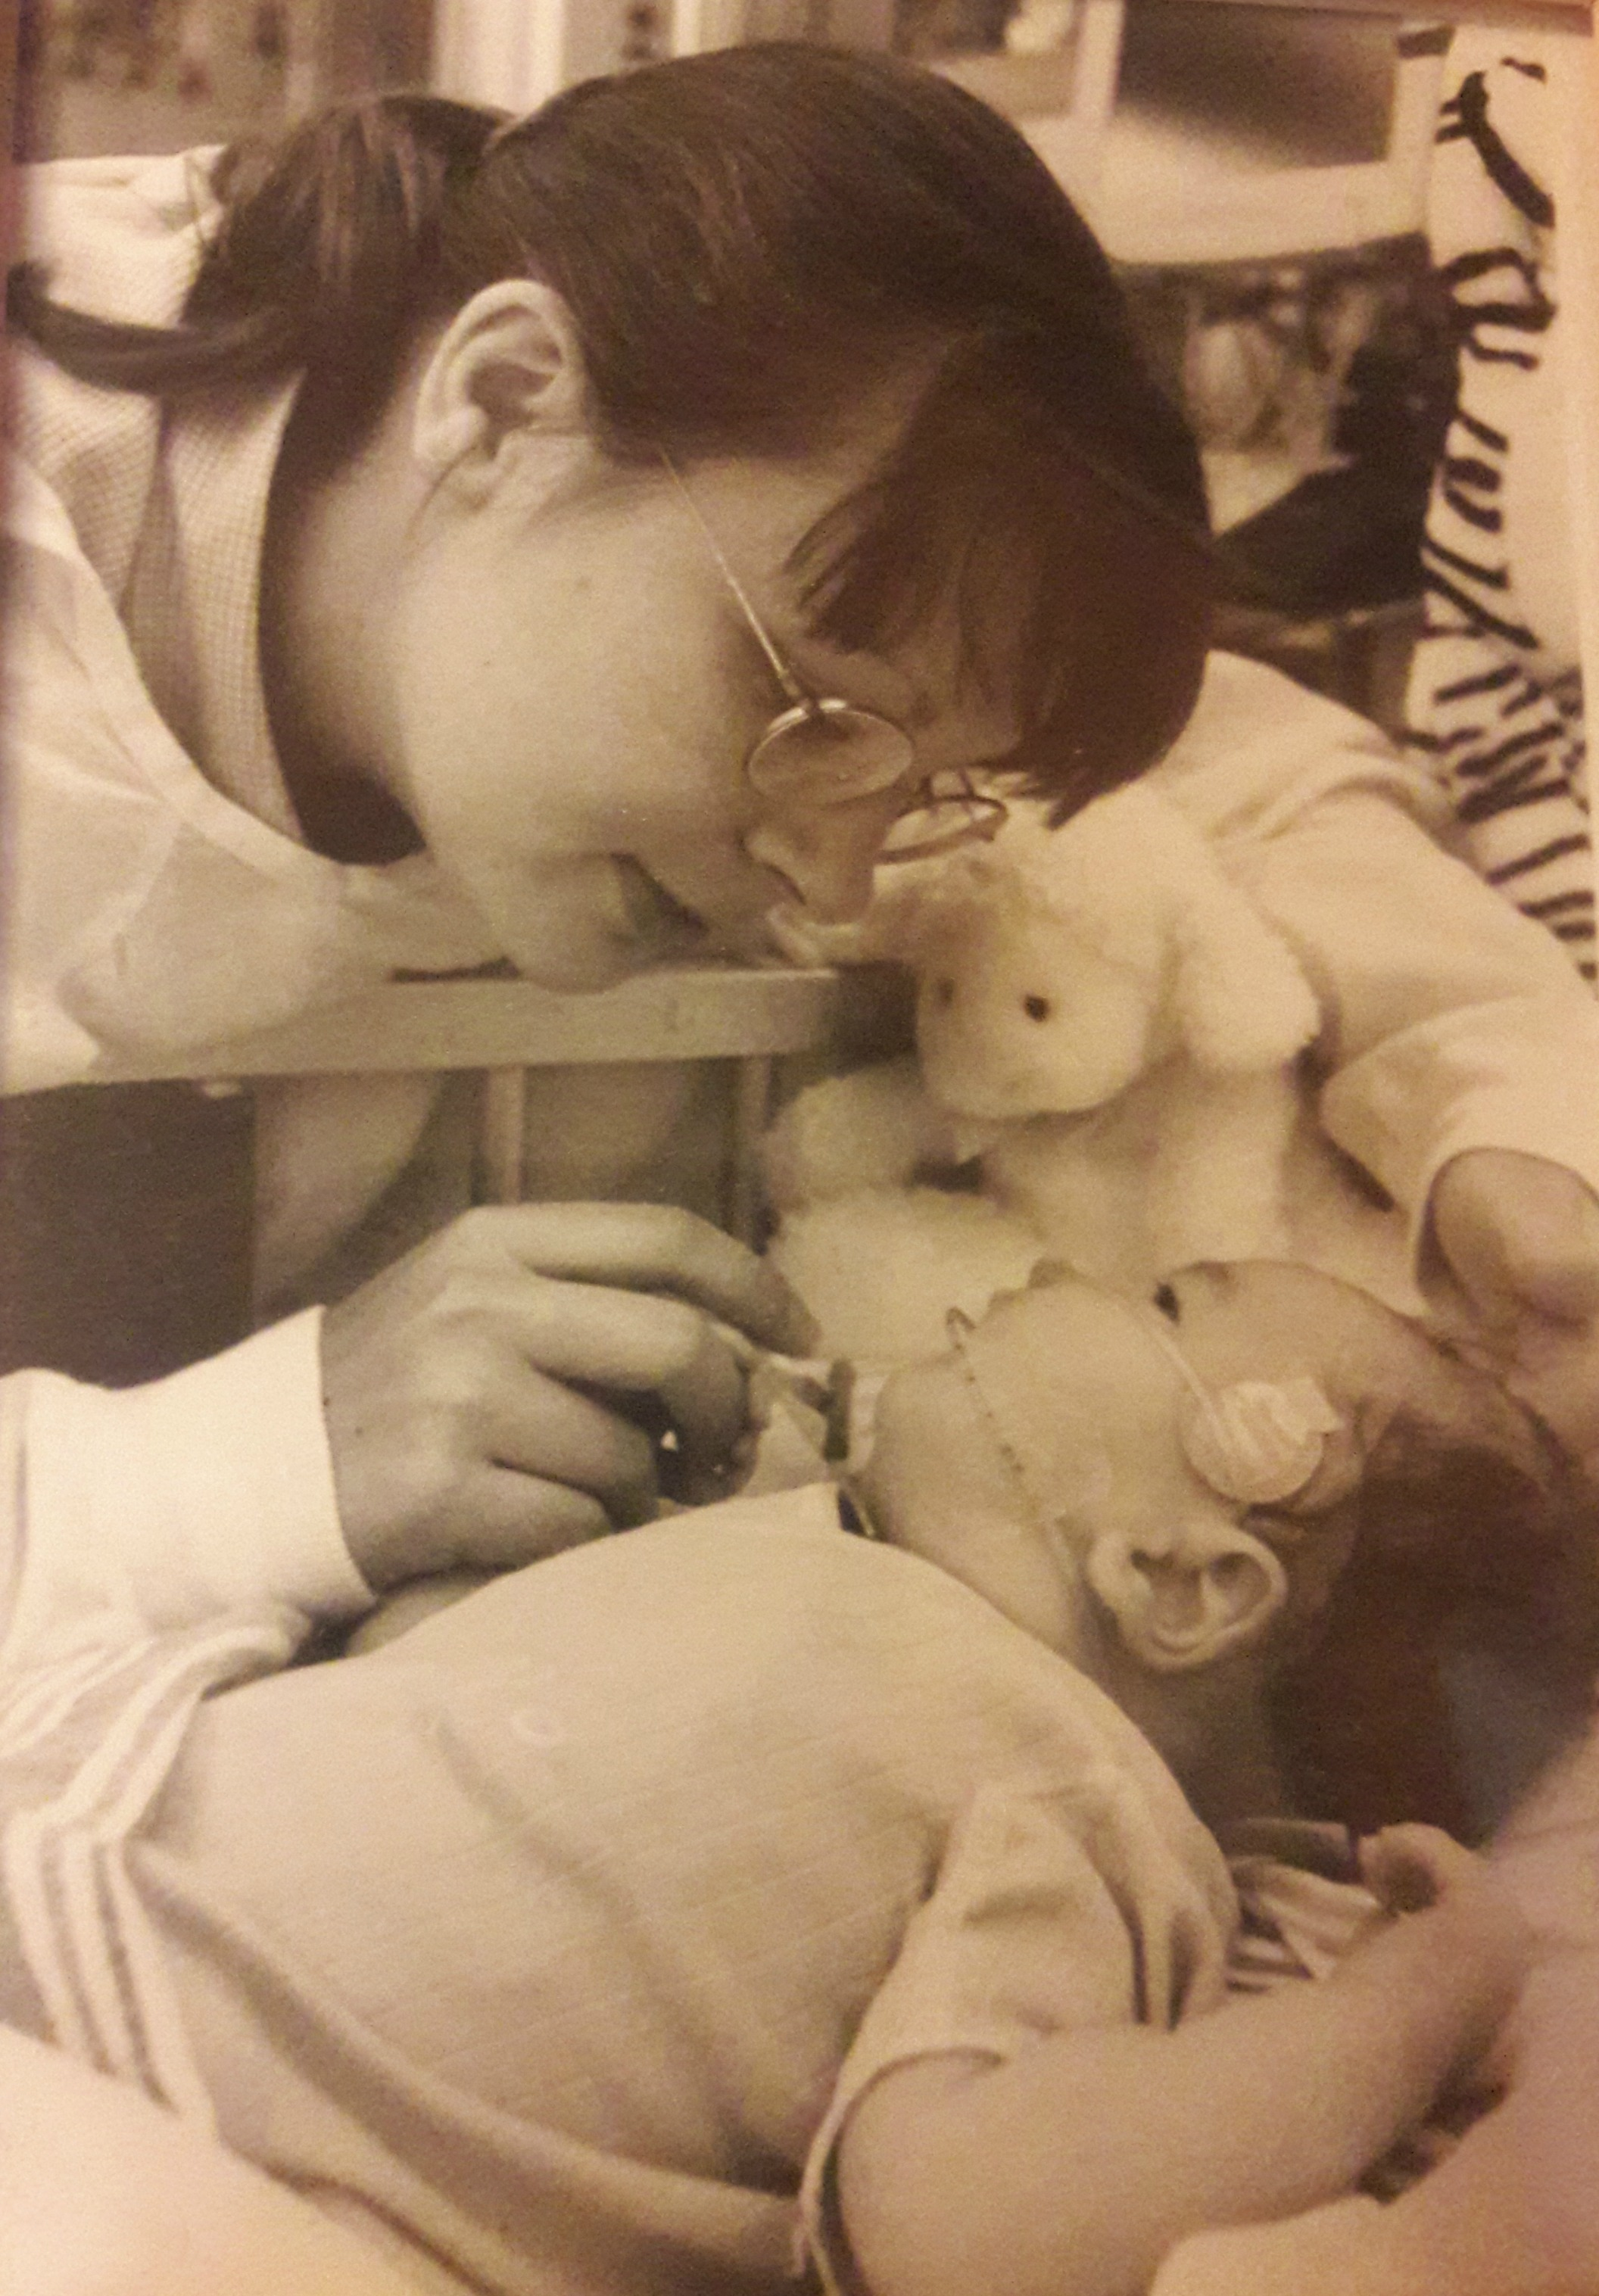 Cathy and Jack in the NICU